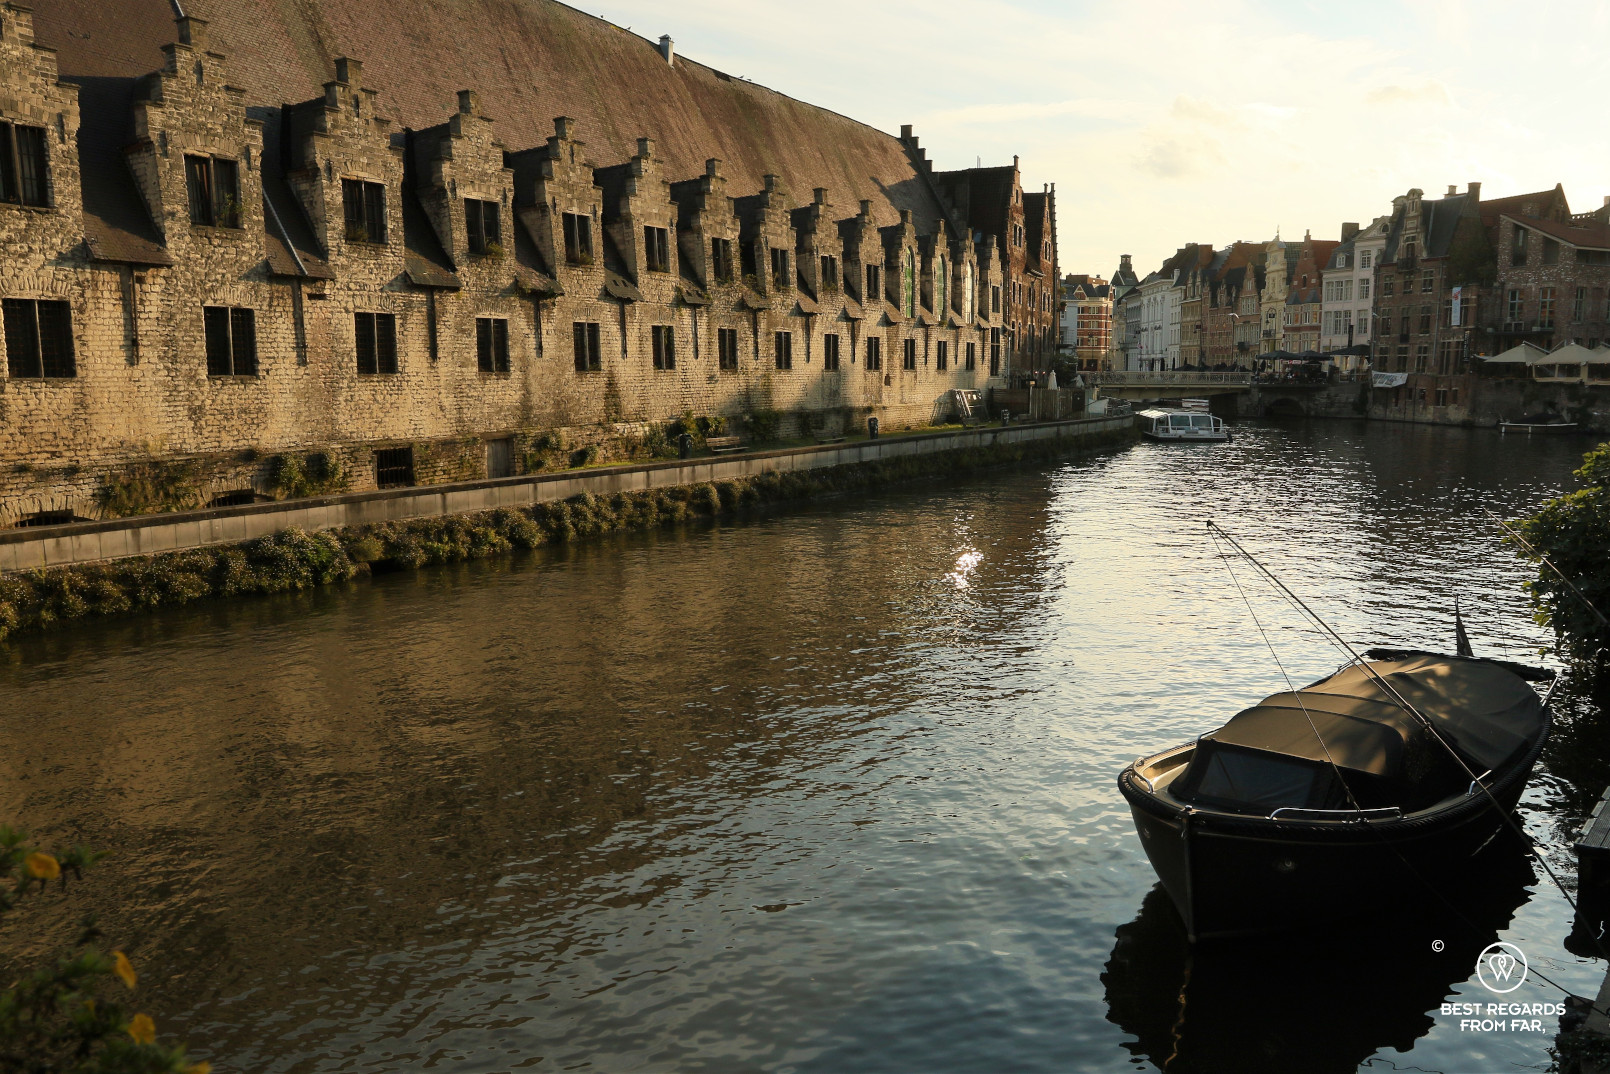 Canal with the medieval Butcher's Hall, Ghent, Belgium